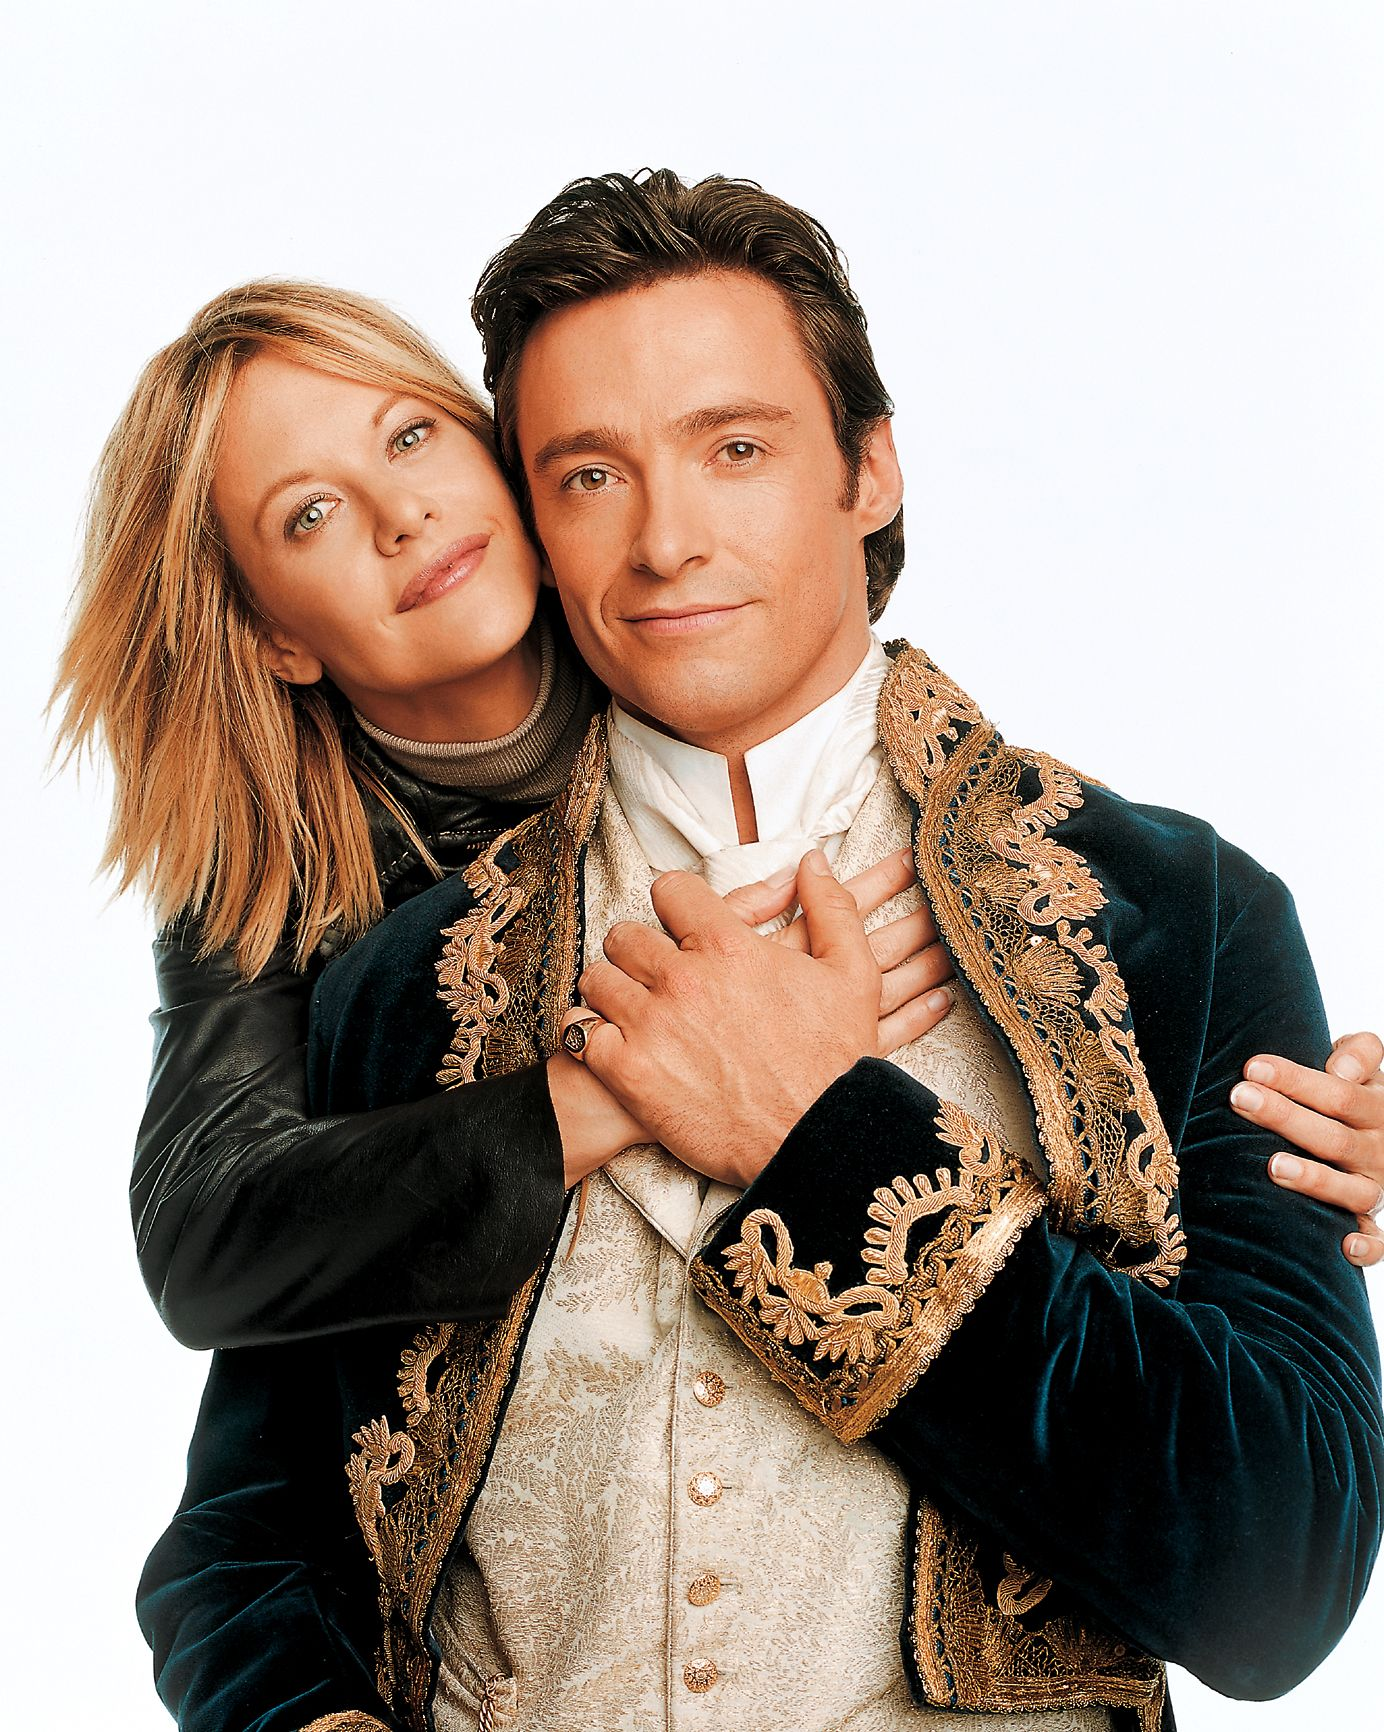 Kate & Leopold: Leopold's Duke Regalia